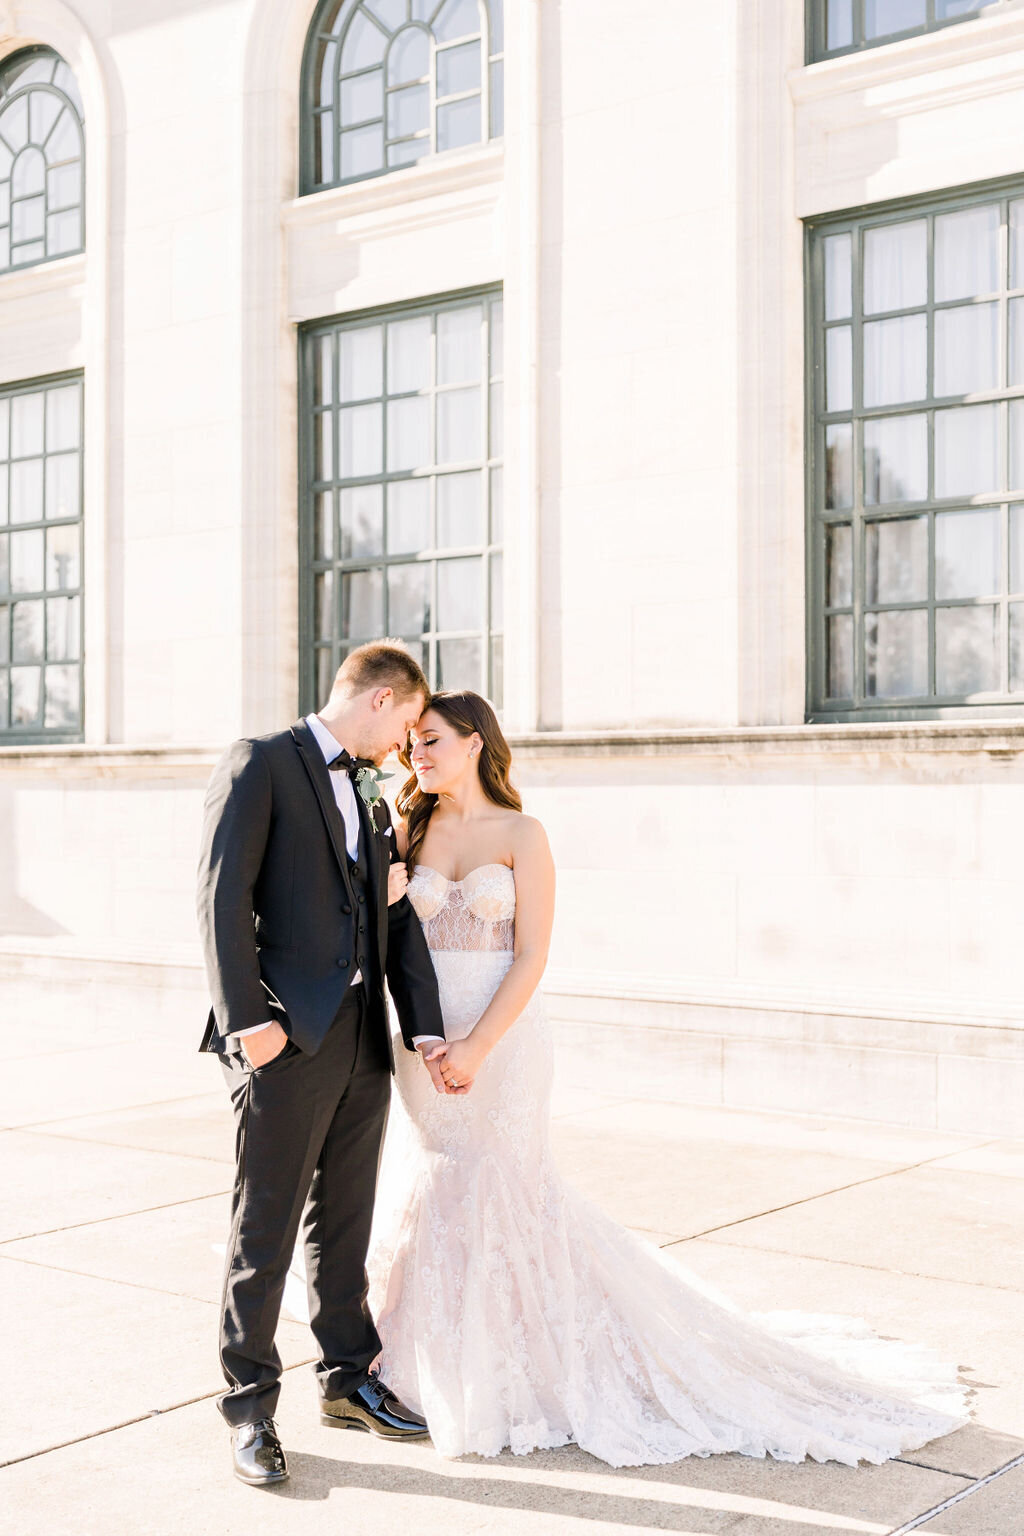 Bride and Groom photographed outside wedding  venue in Bowling Green, KY Paige Michelle Photography Light and Airy